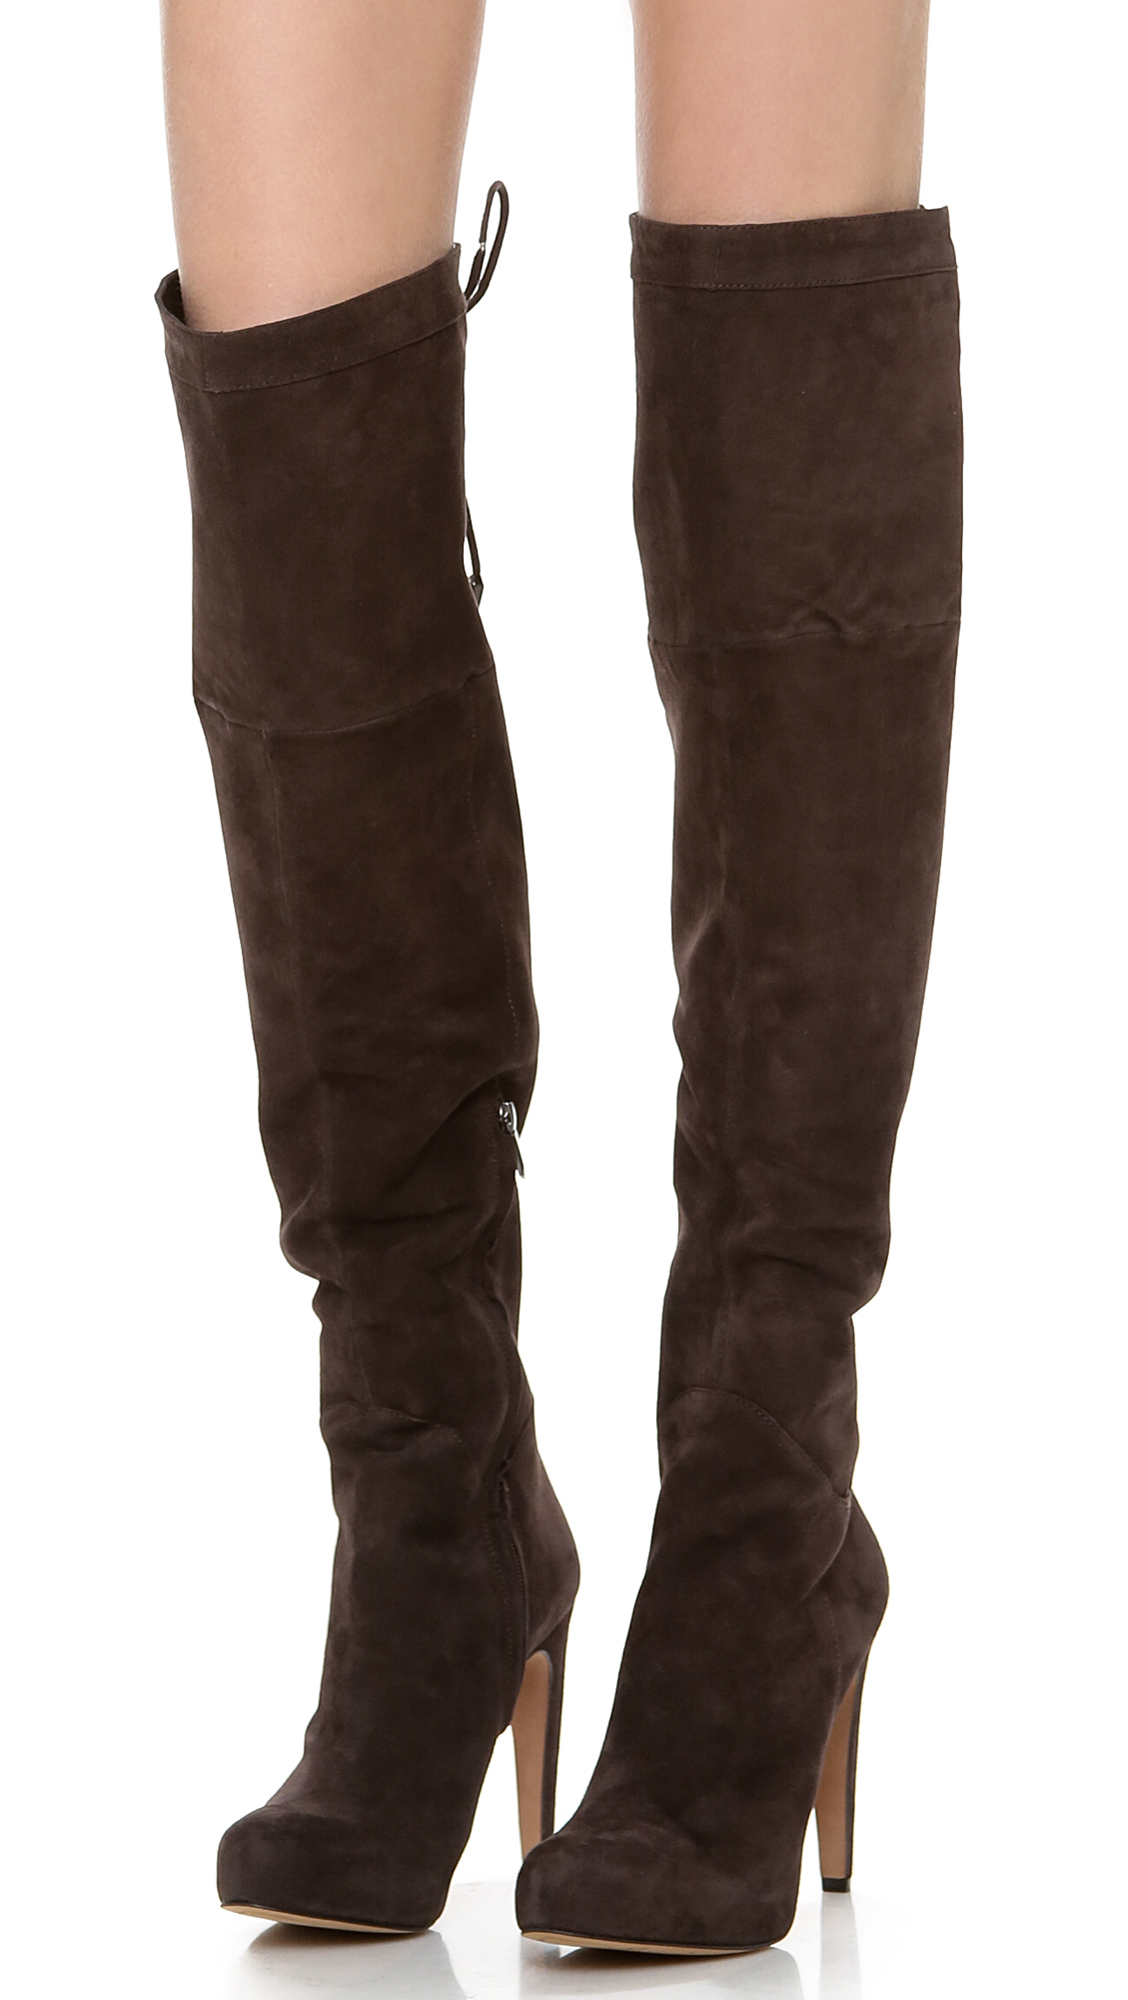 Sam edelman Kayla Over The Knee Boots in Brown | Lyst